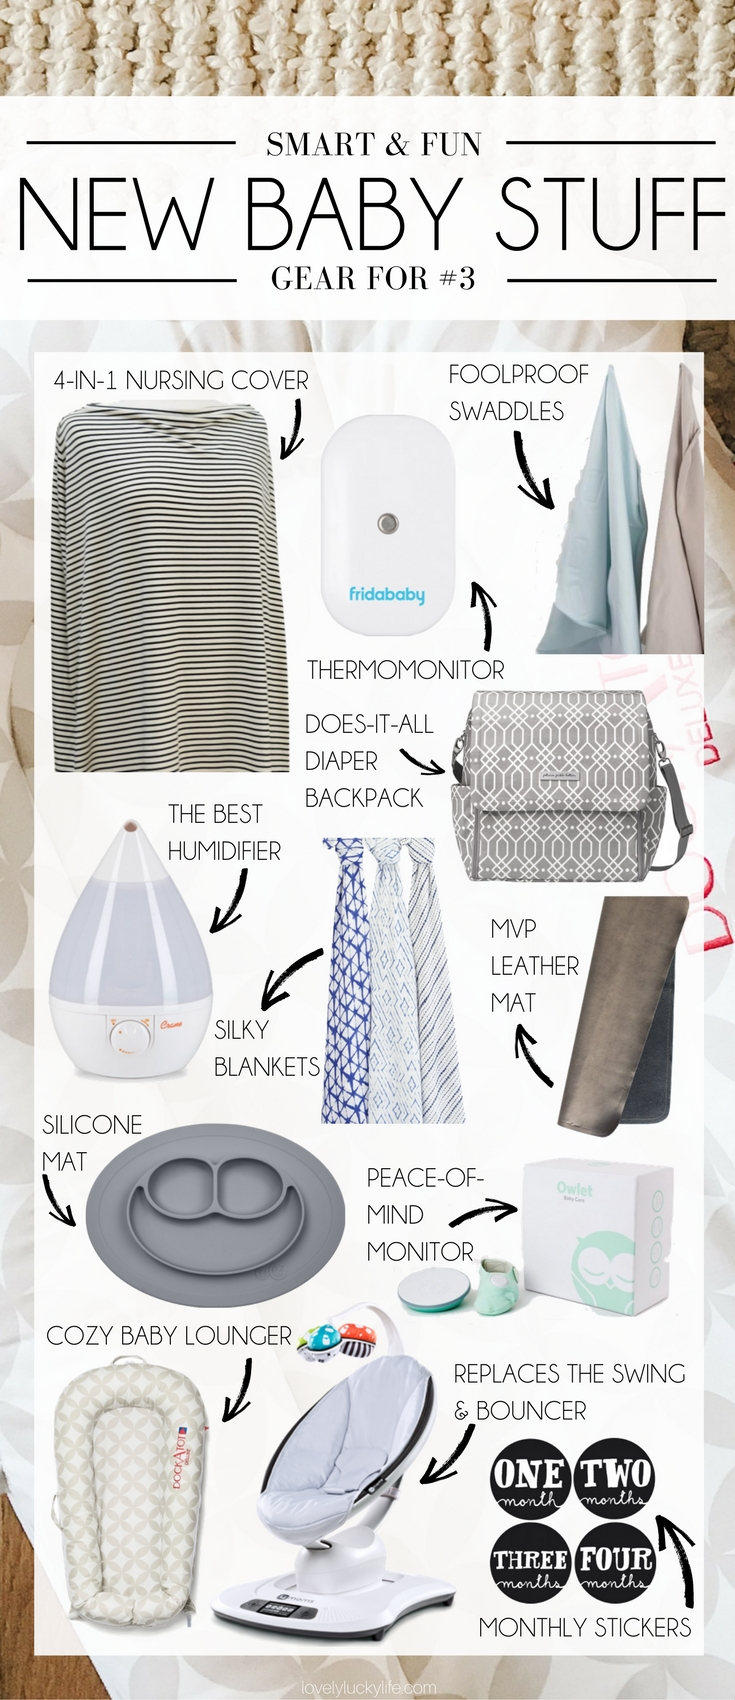 3rd baby wish list - new baby gear that wasn't around for my first baby almost 5 years ago. this is the coolest new baby gear any mom would love